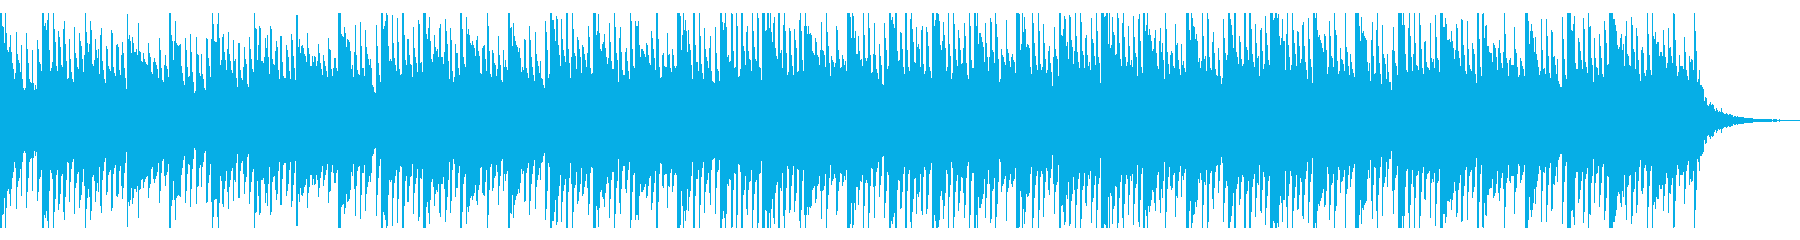 documentary's reproduced waveform